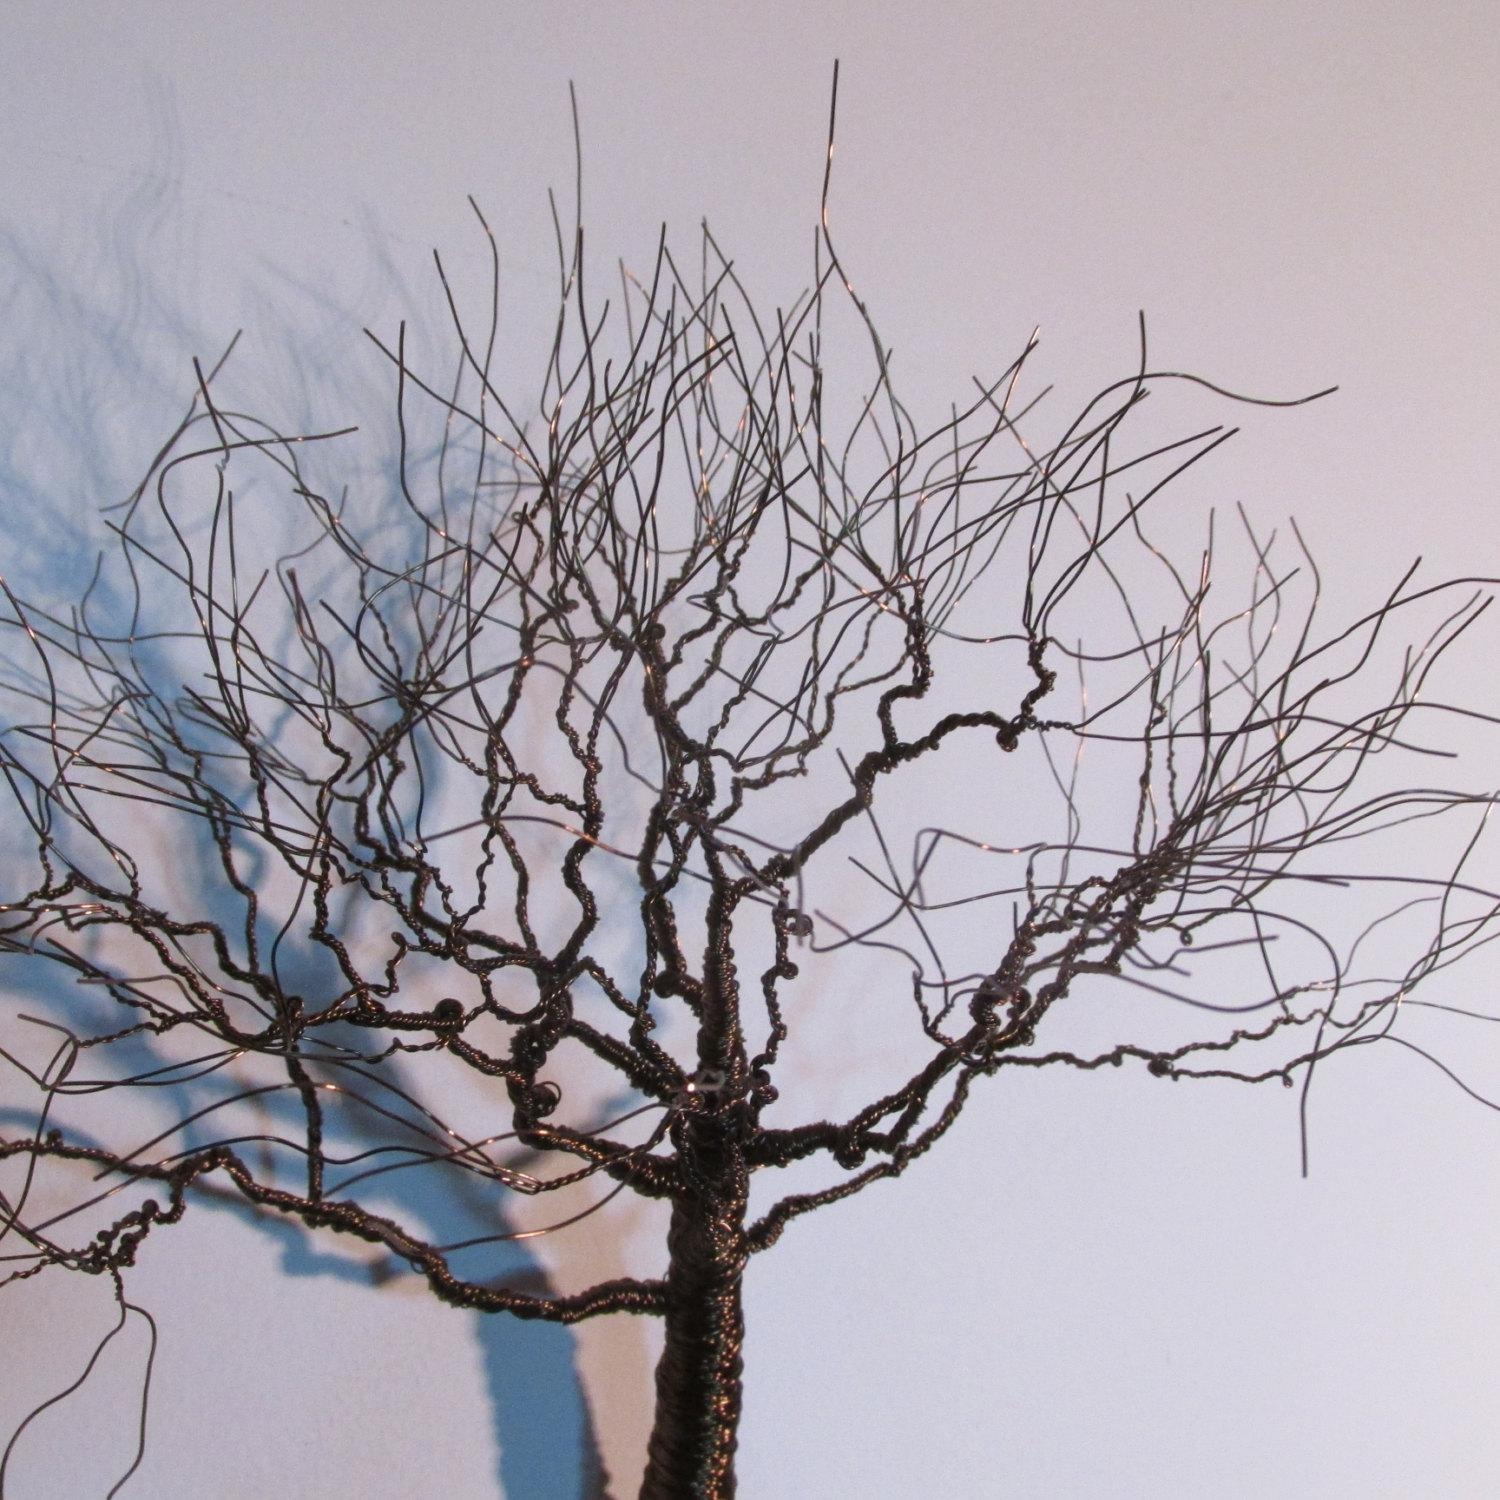 Wall Art Decor Ideas: Bronze Decorations Metal Wall Art Tree Brown Within Metal Wall Art Trees And Branches (Image 17 of 20)